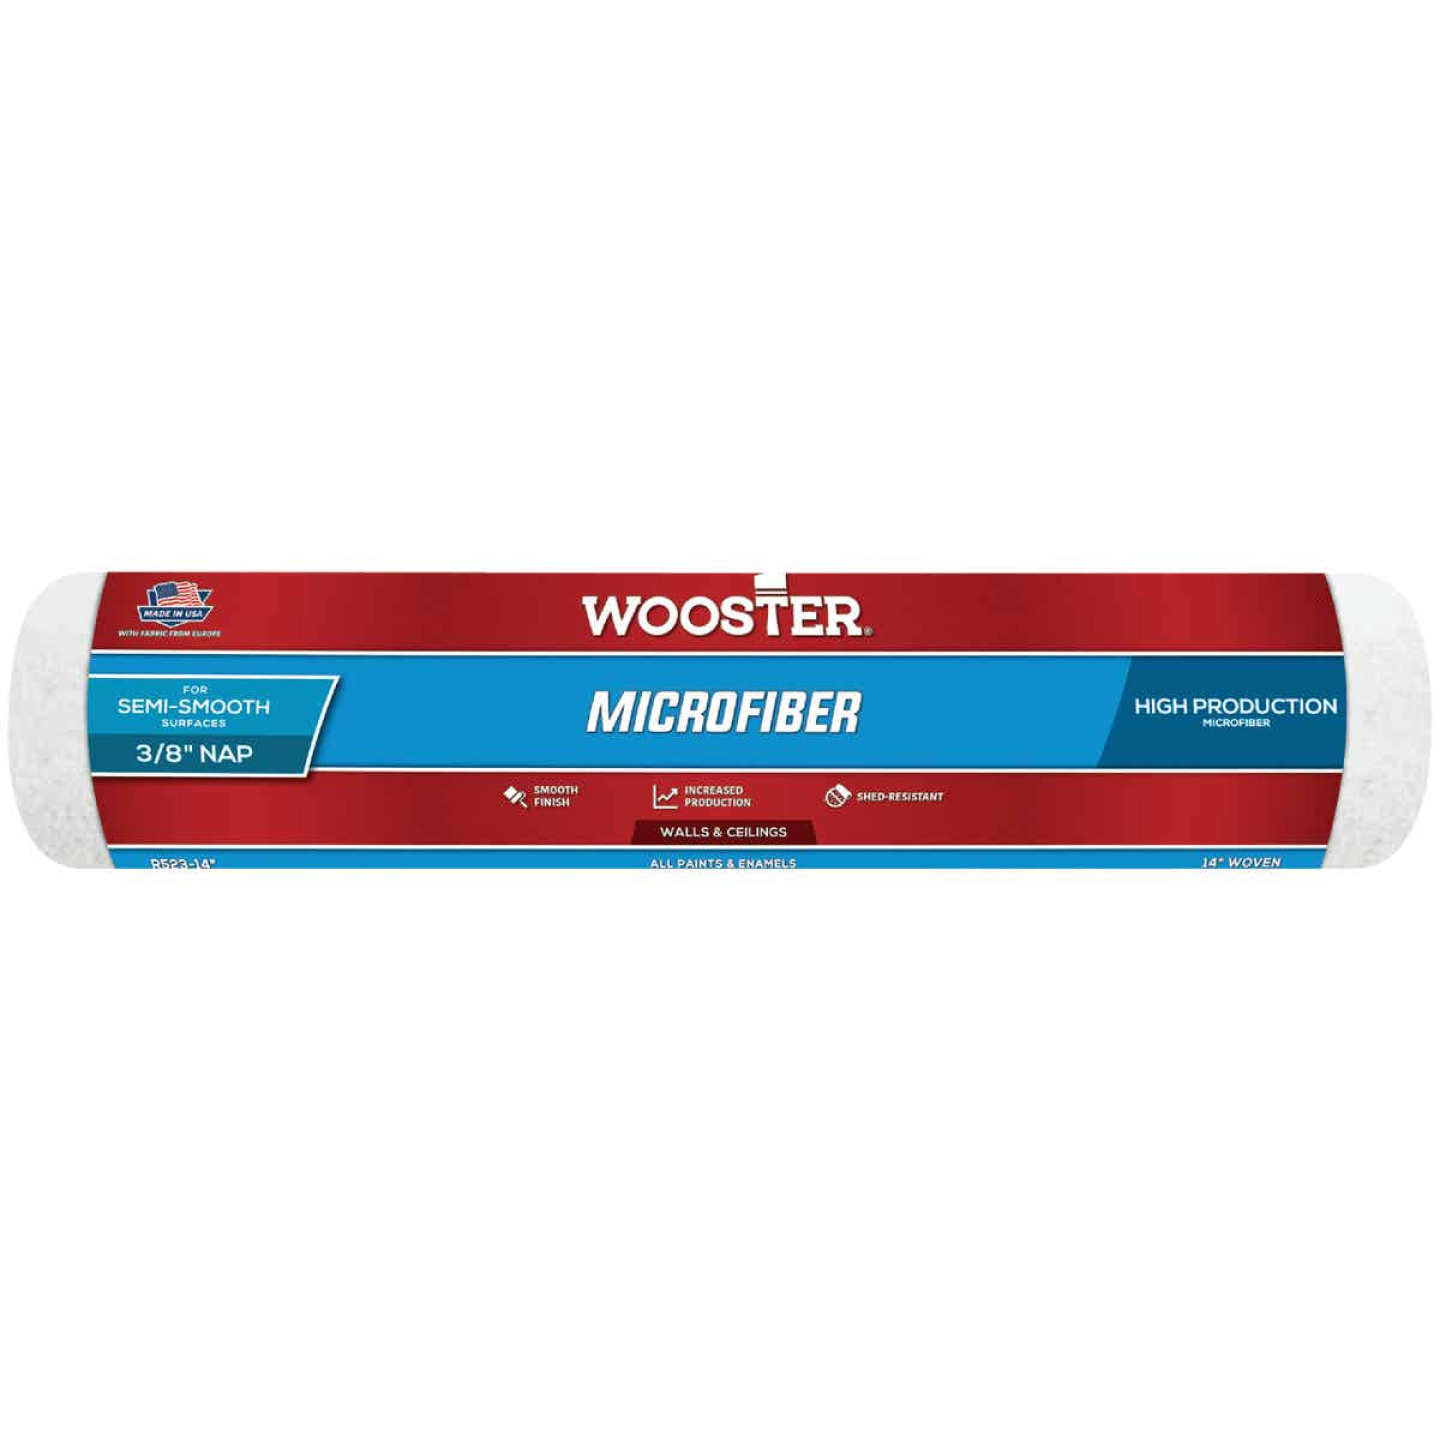 Wooster 14 In. x 3/8 In. Microfiber Roller Cover Image 1